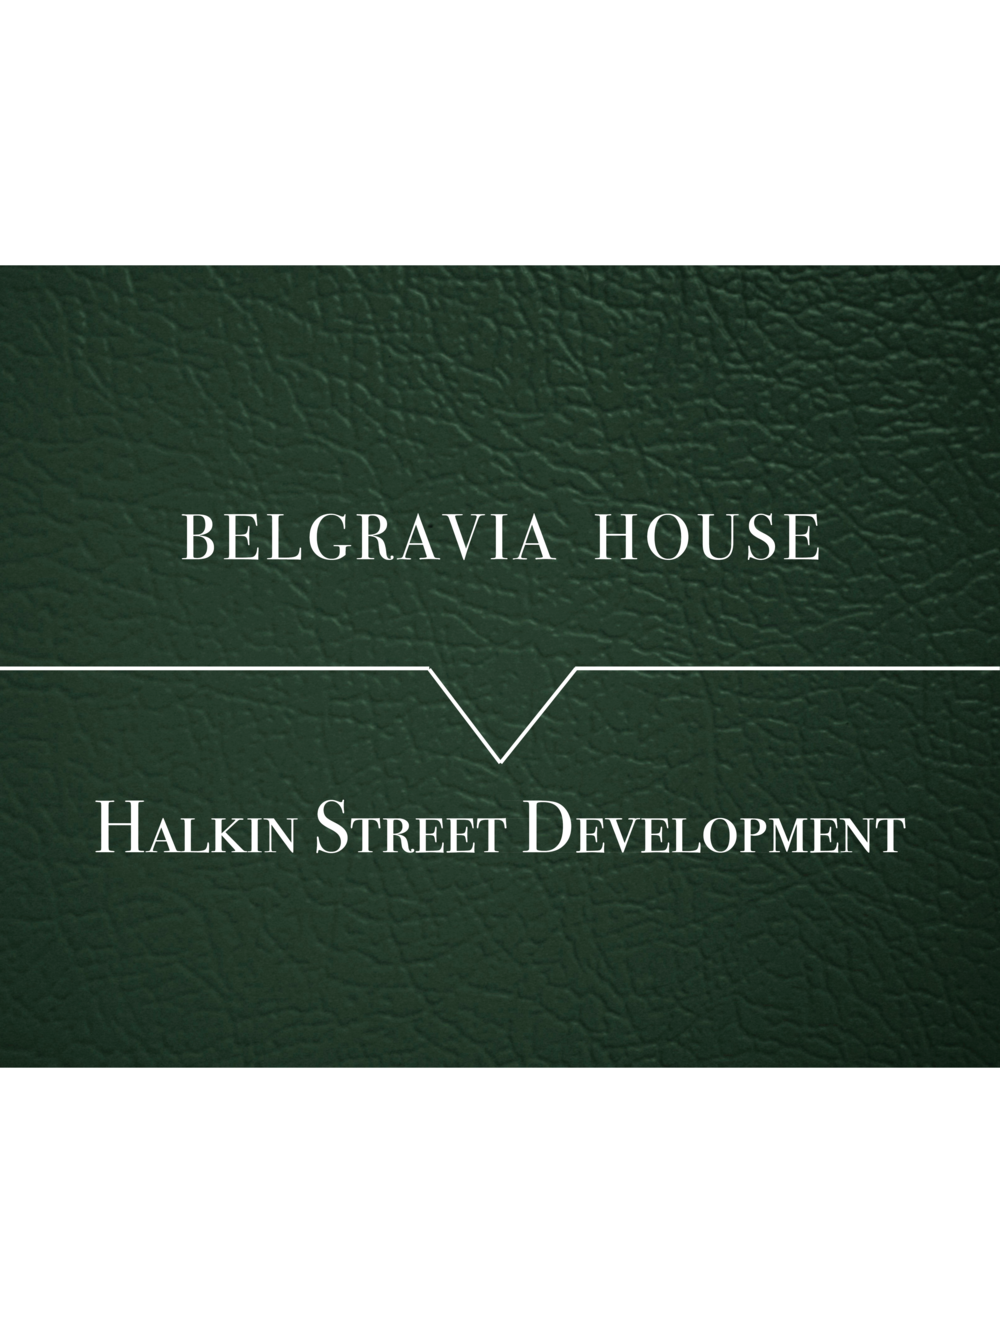 Development - Belgravia House